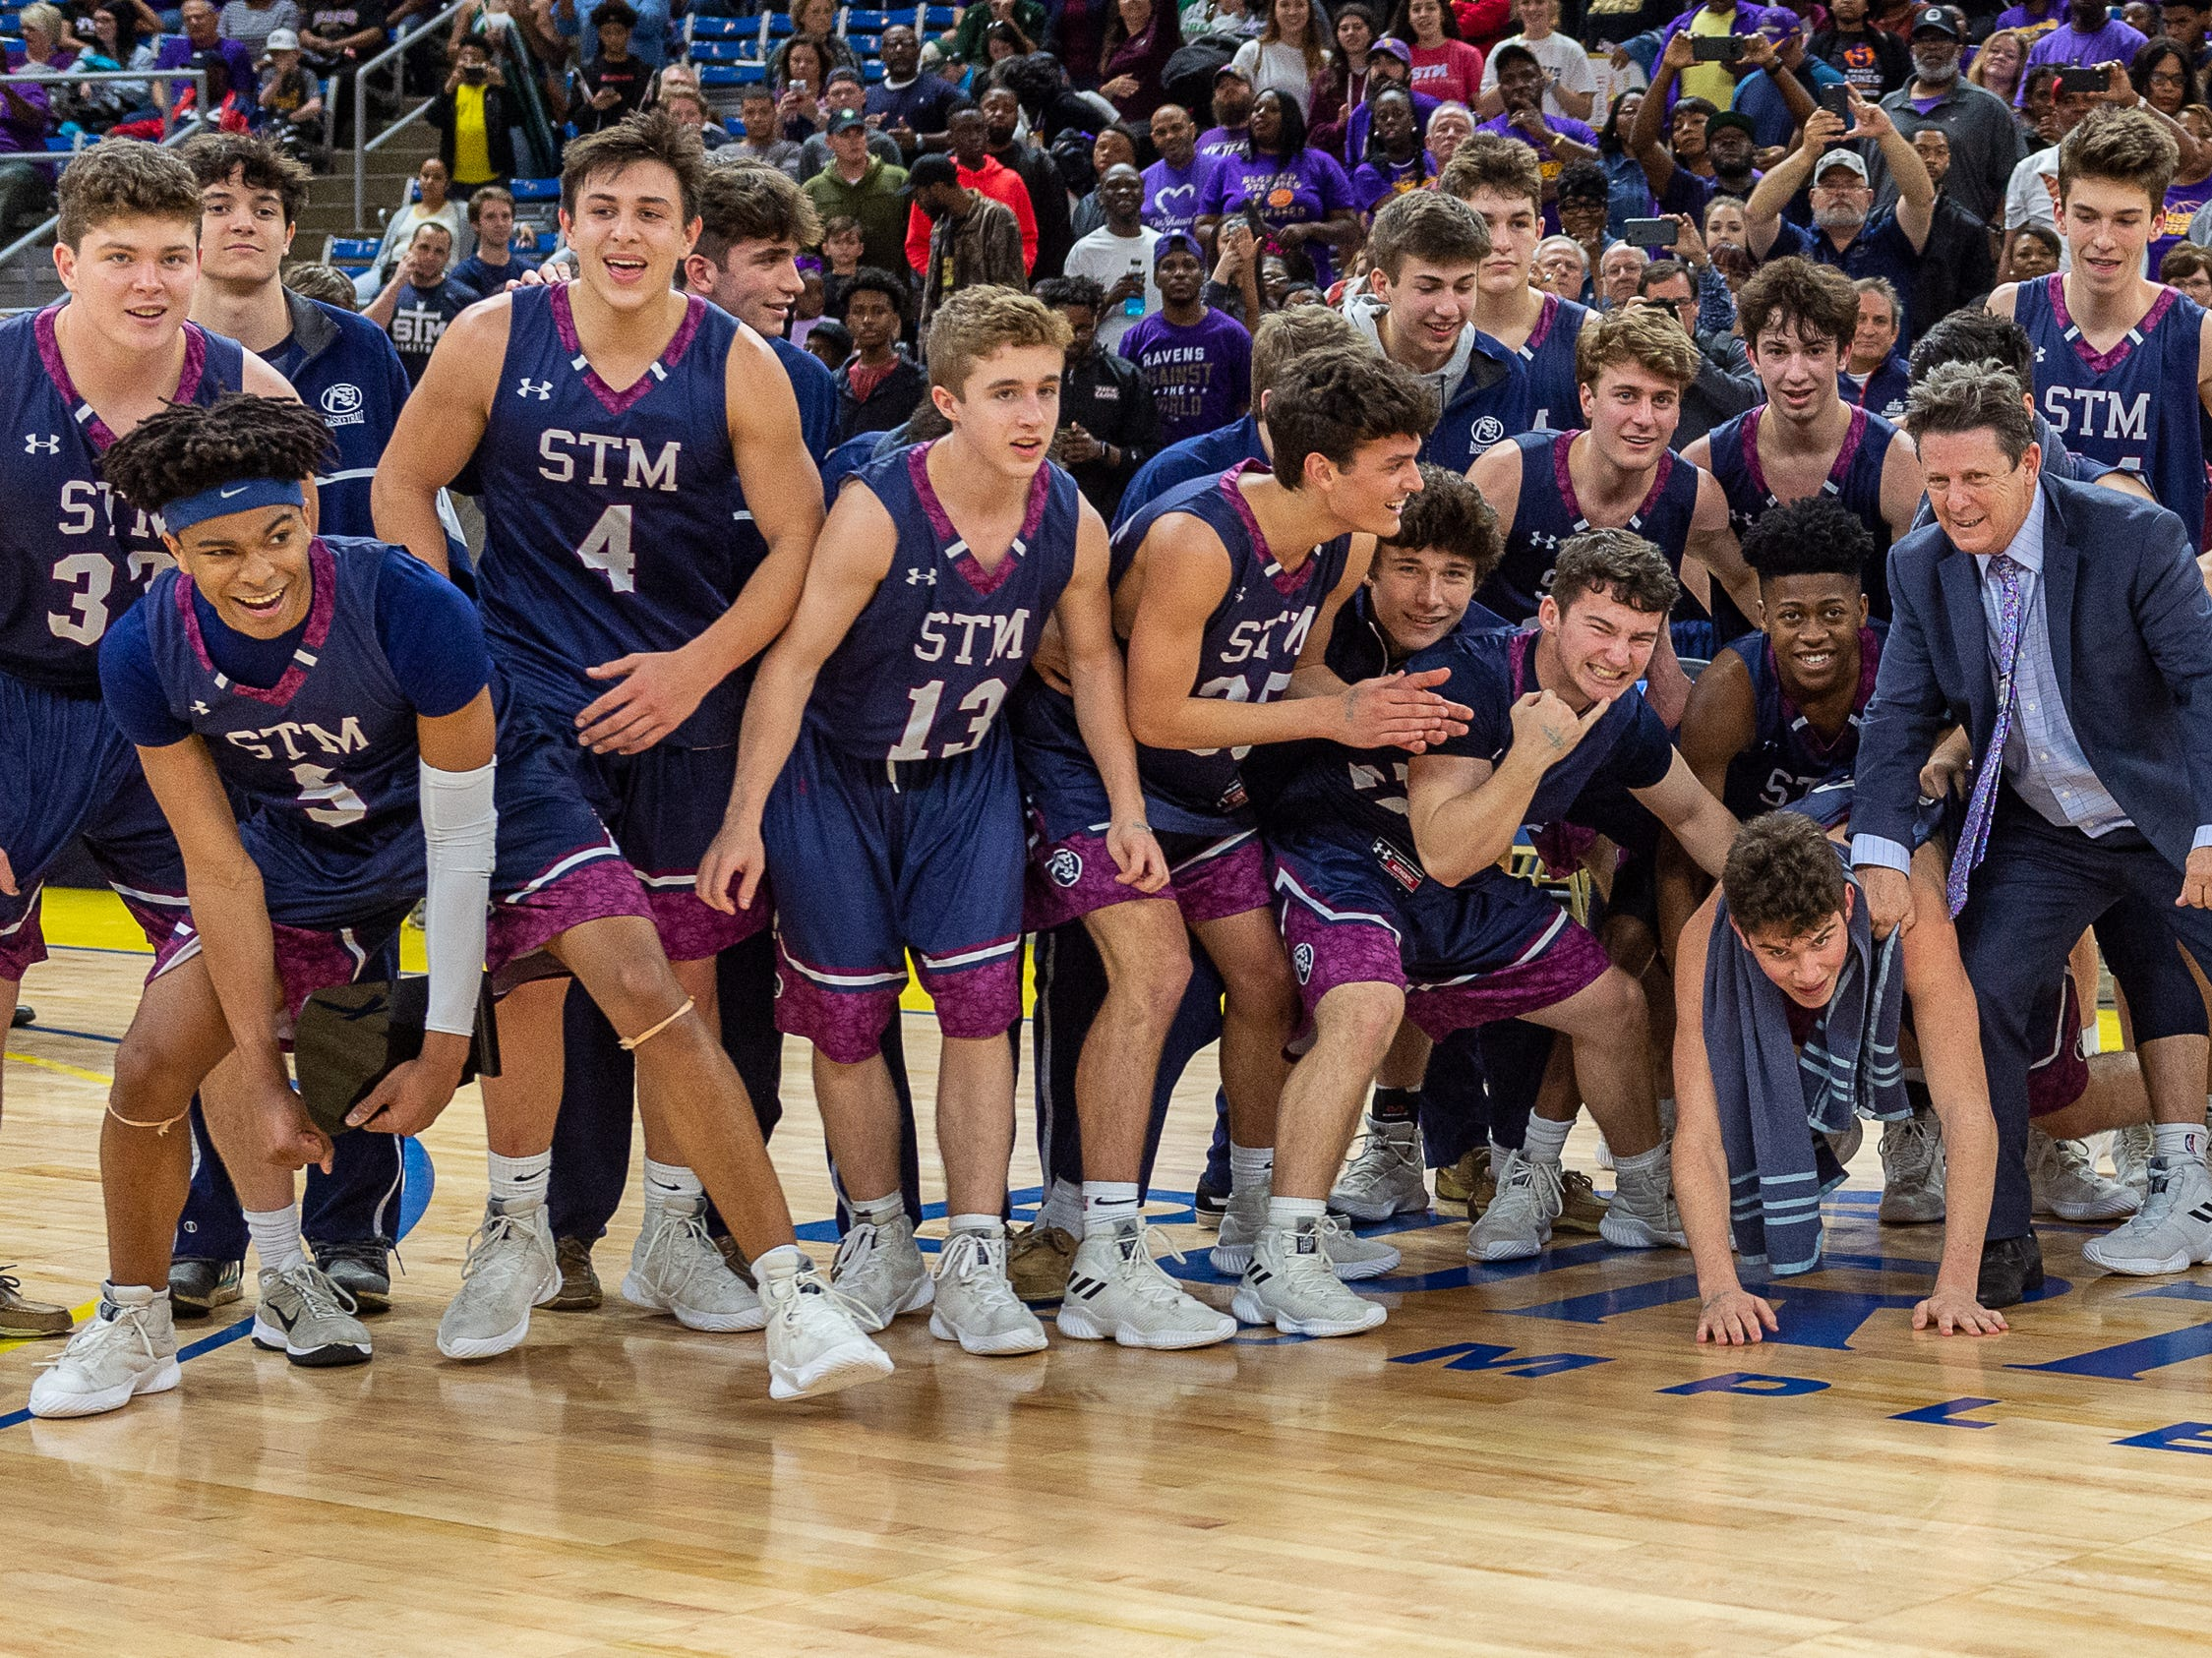 The STM Cougars beat DeLaSalle in double overtime to win the Allstate Sugar Bowl/LHSAA Boys' Marsh Madness Div II State Championship. Saturday, March 9, 2019.